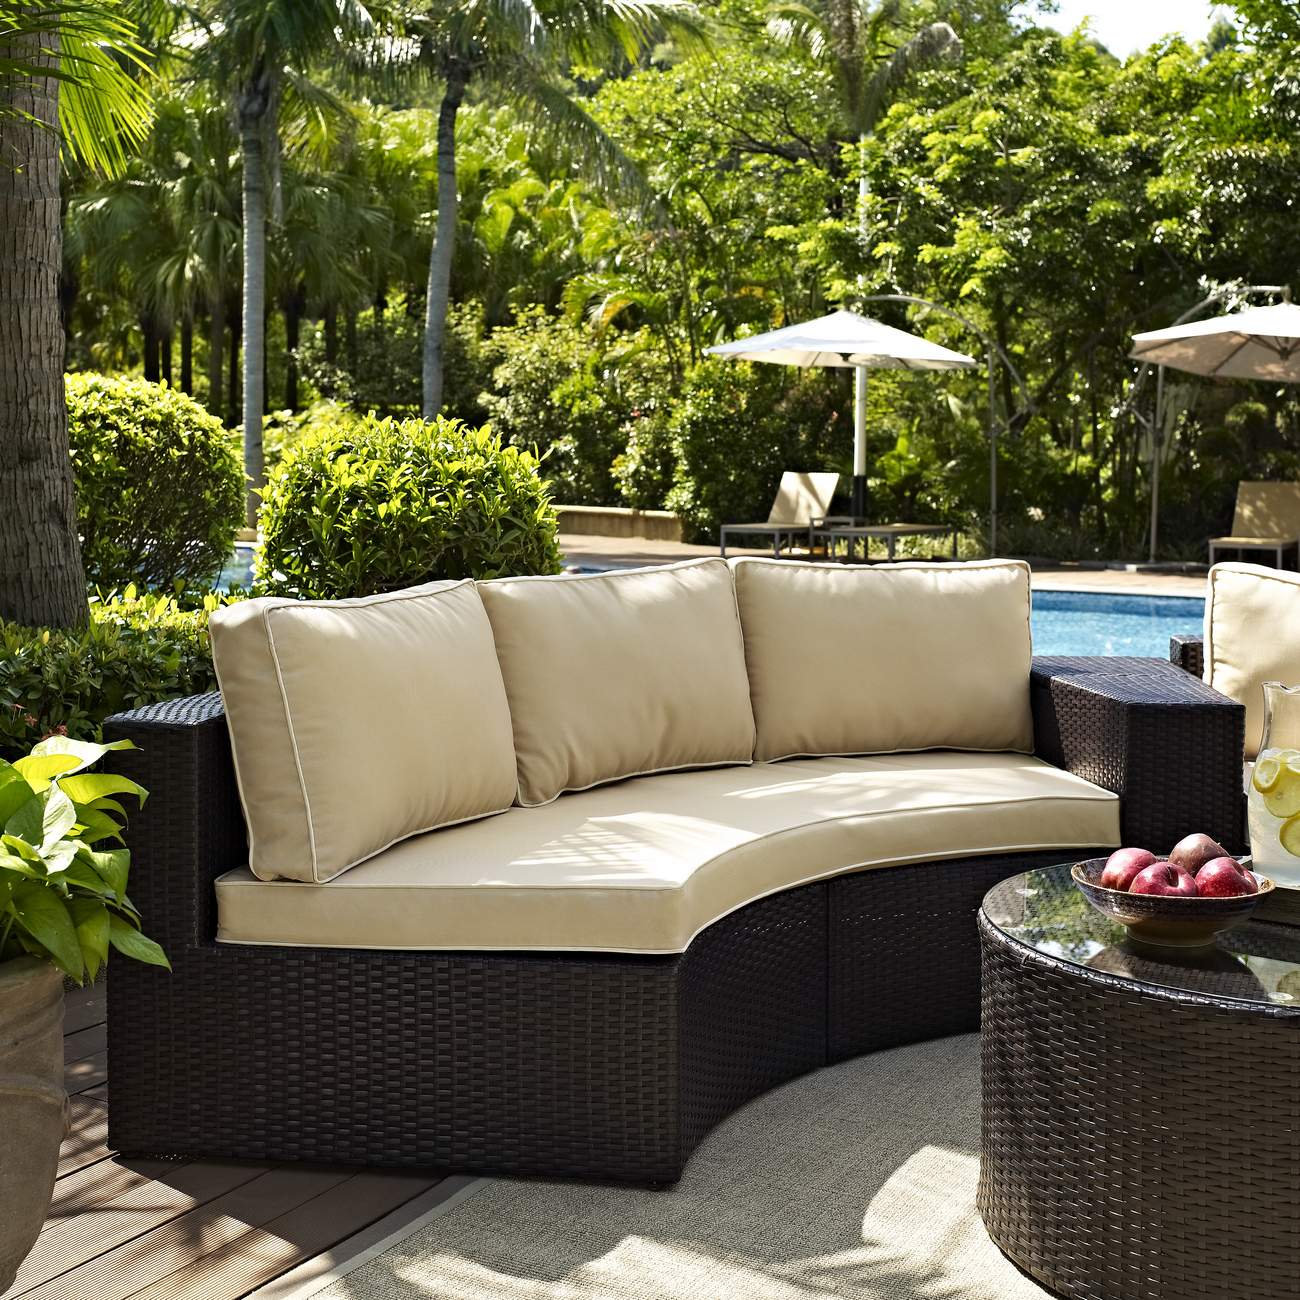 Crosley Brands Outdoor Wicker Round Sectional Sofa Sand Cushions